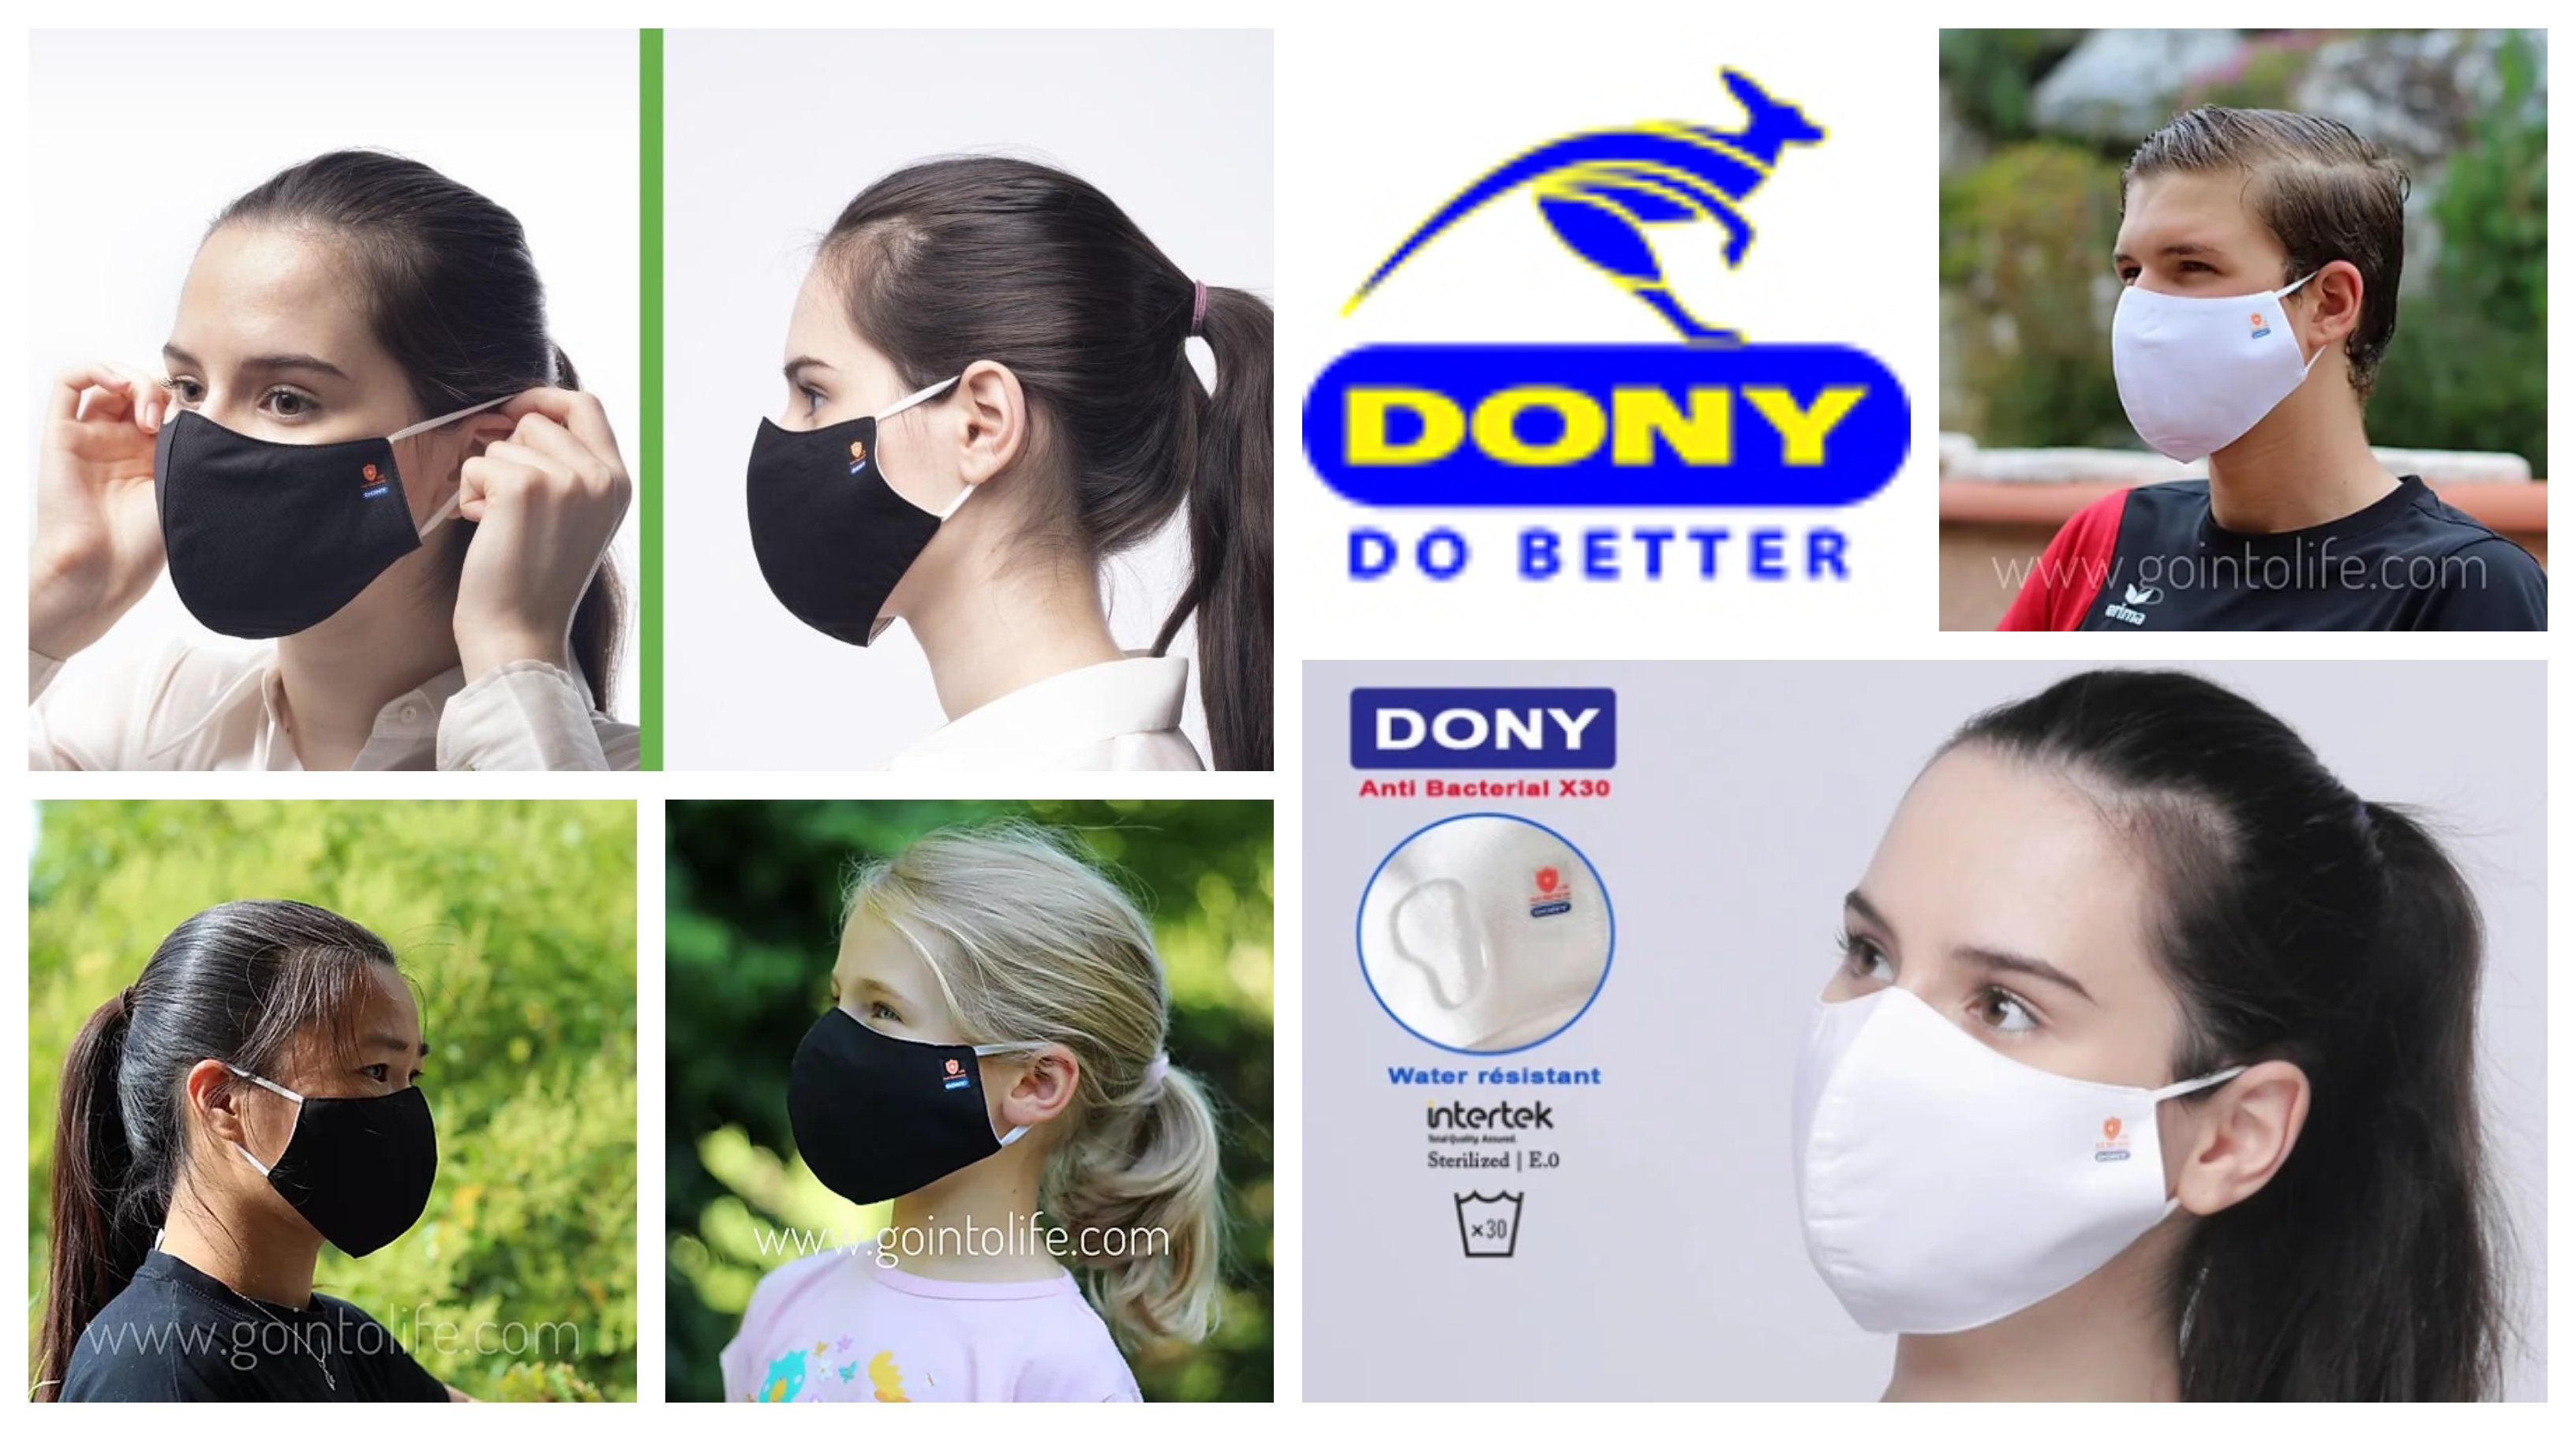 Fast wholesale face mask supplier exporter worldwide (especially to America, Europe, Australia and Asian countries)